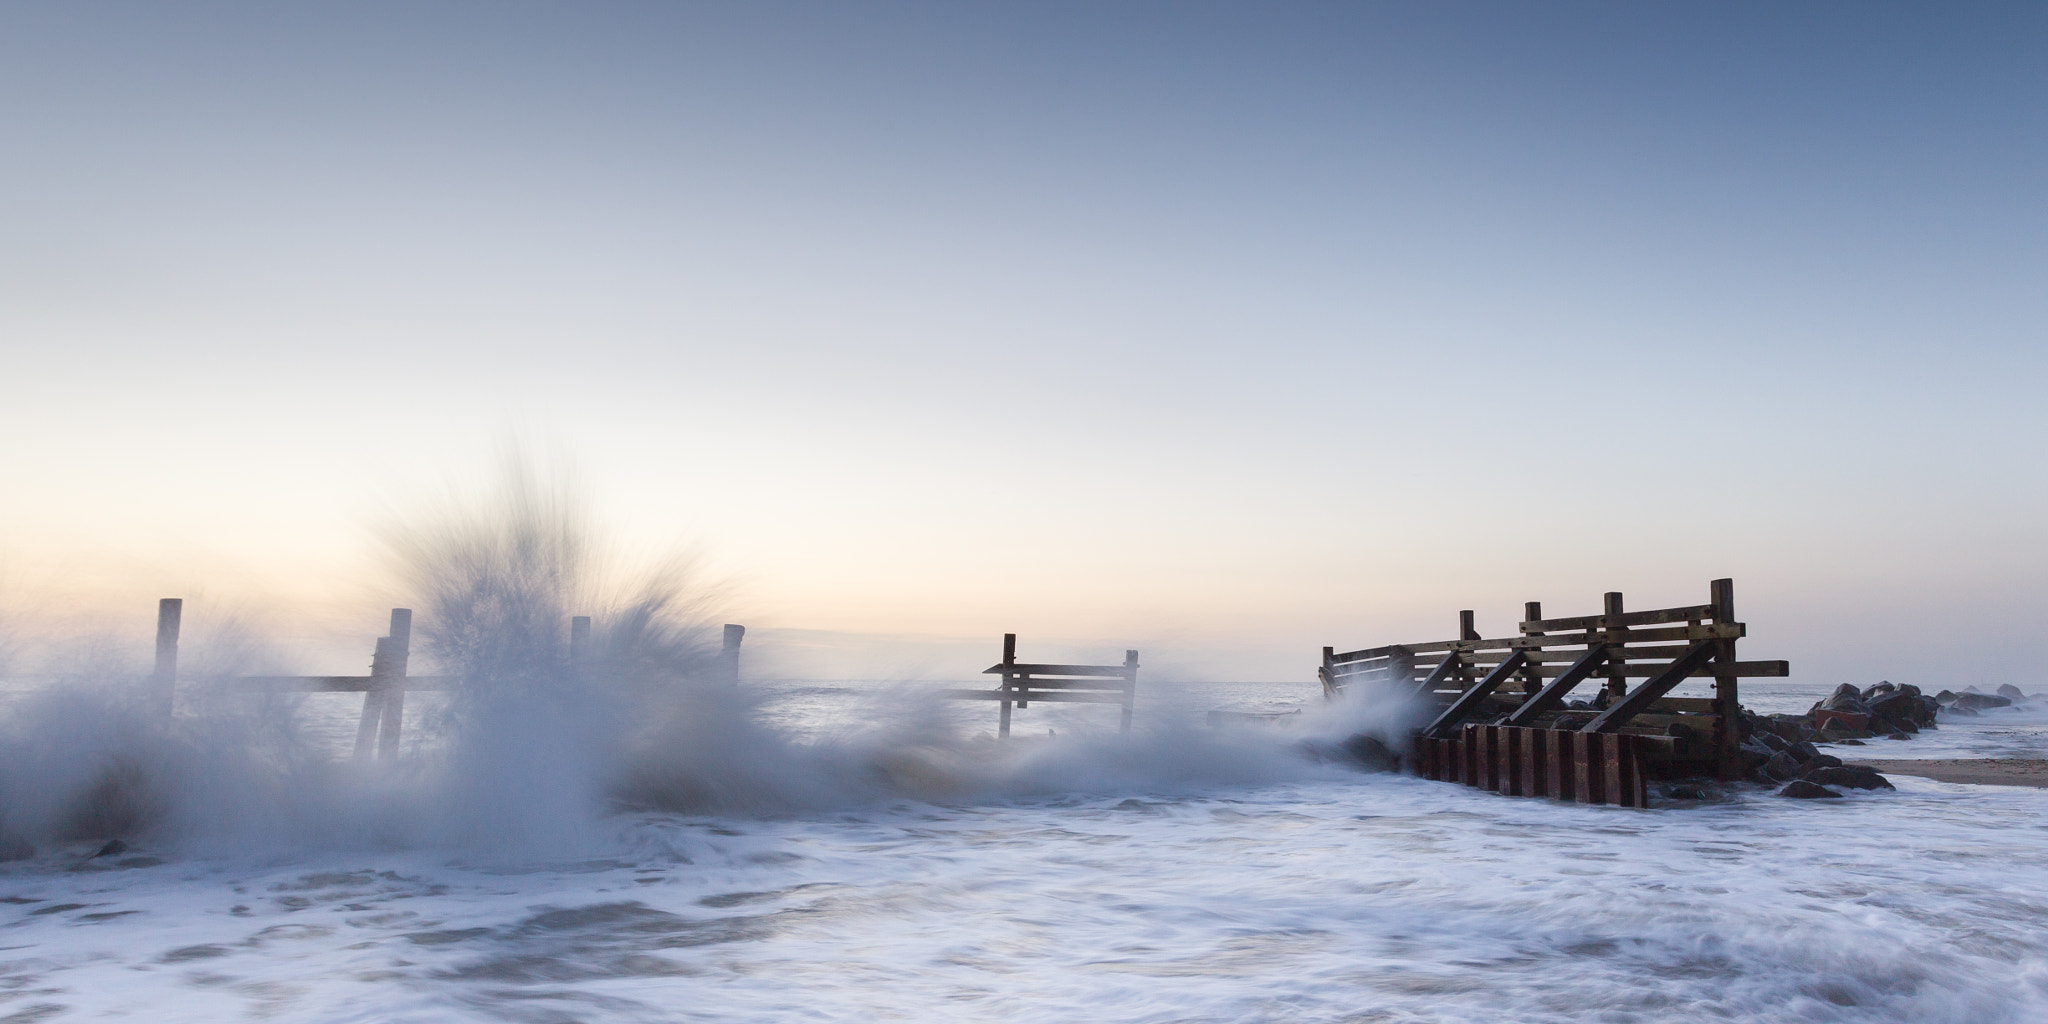 Photograph Cool Start to the Day by Simon Wrigglesworth on 500px